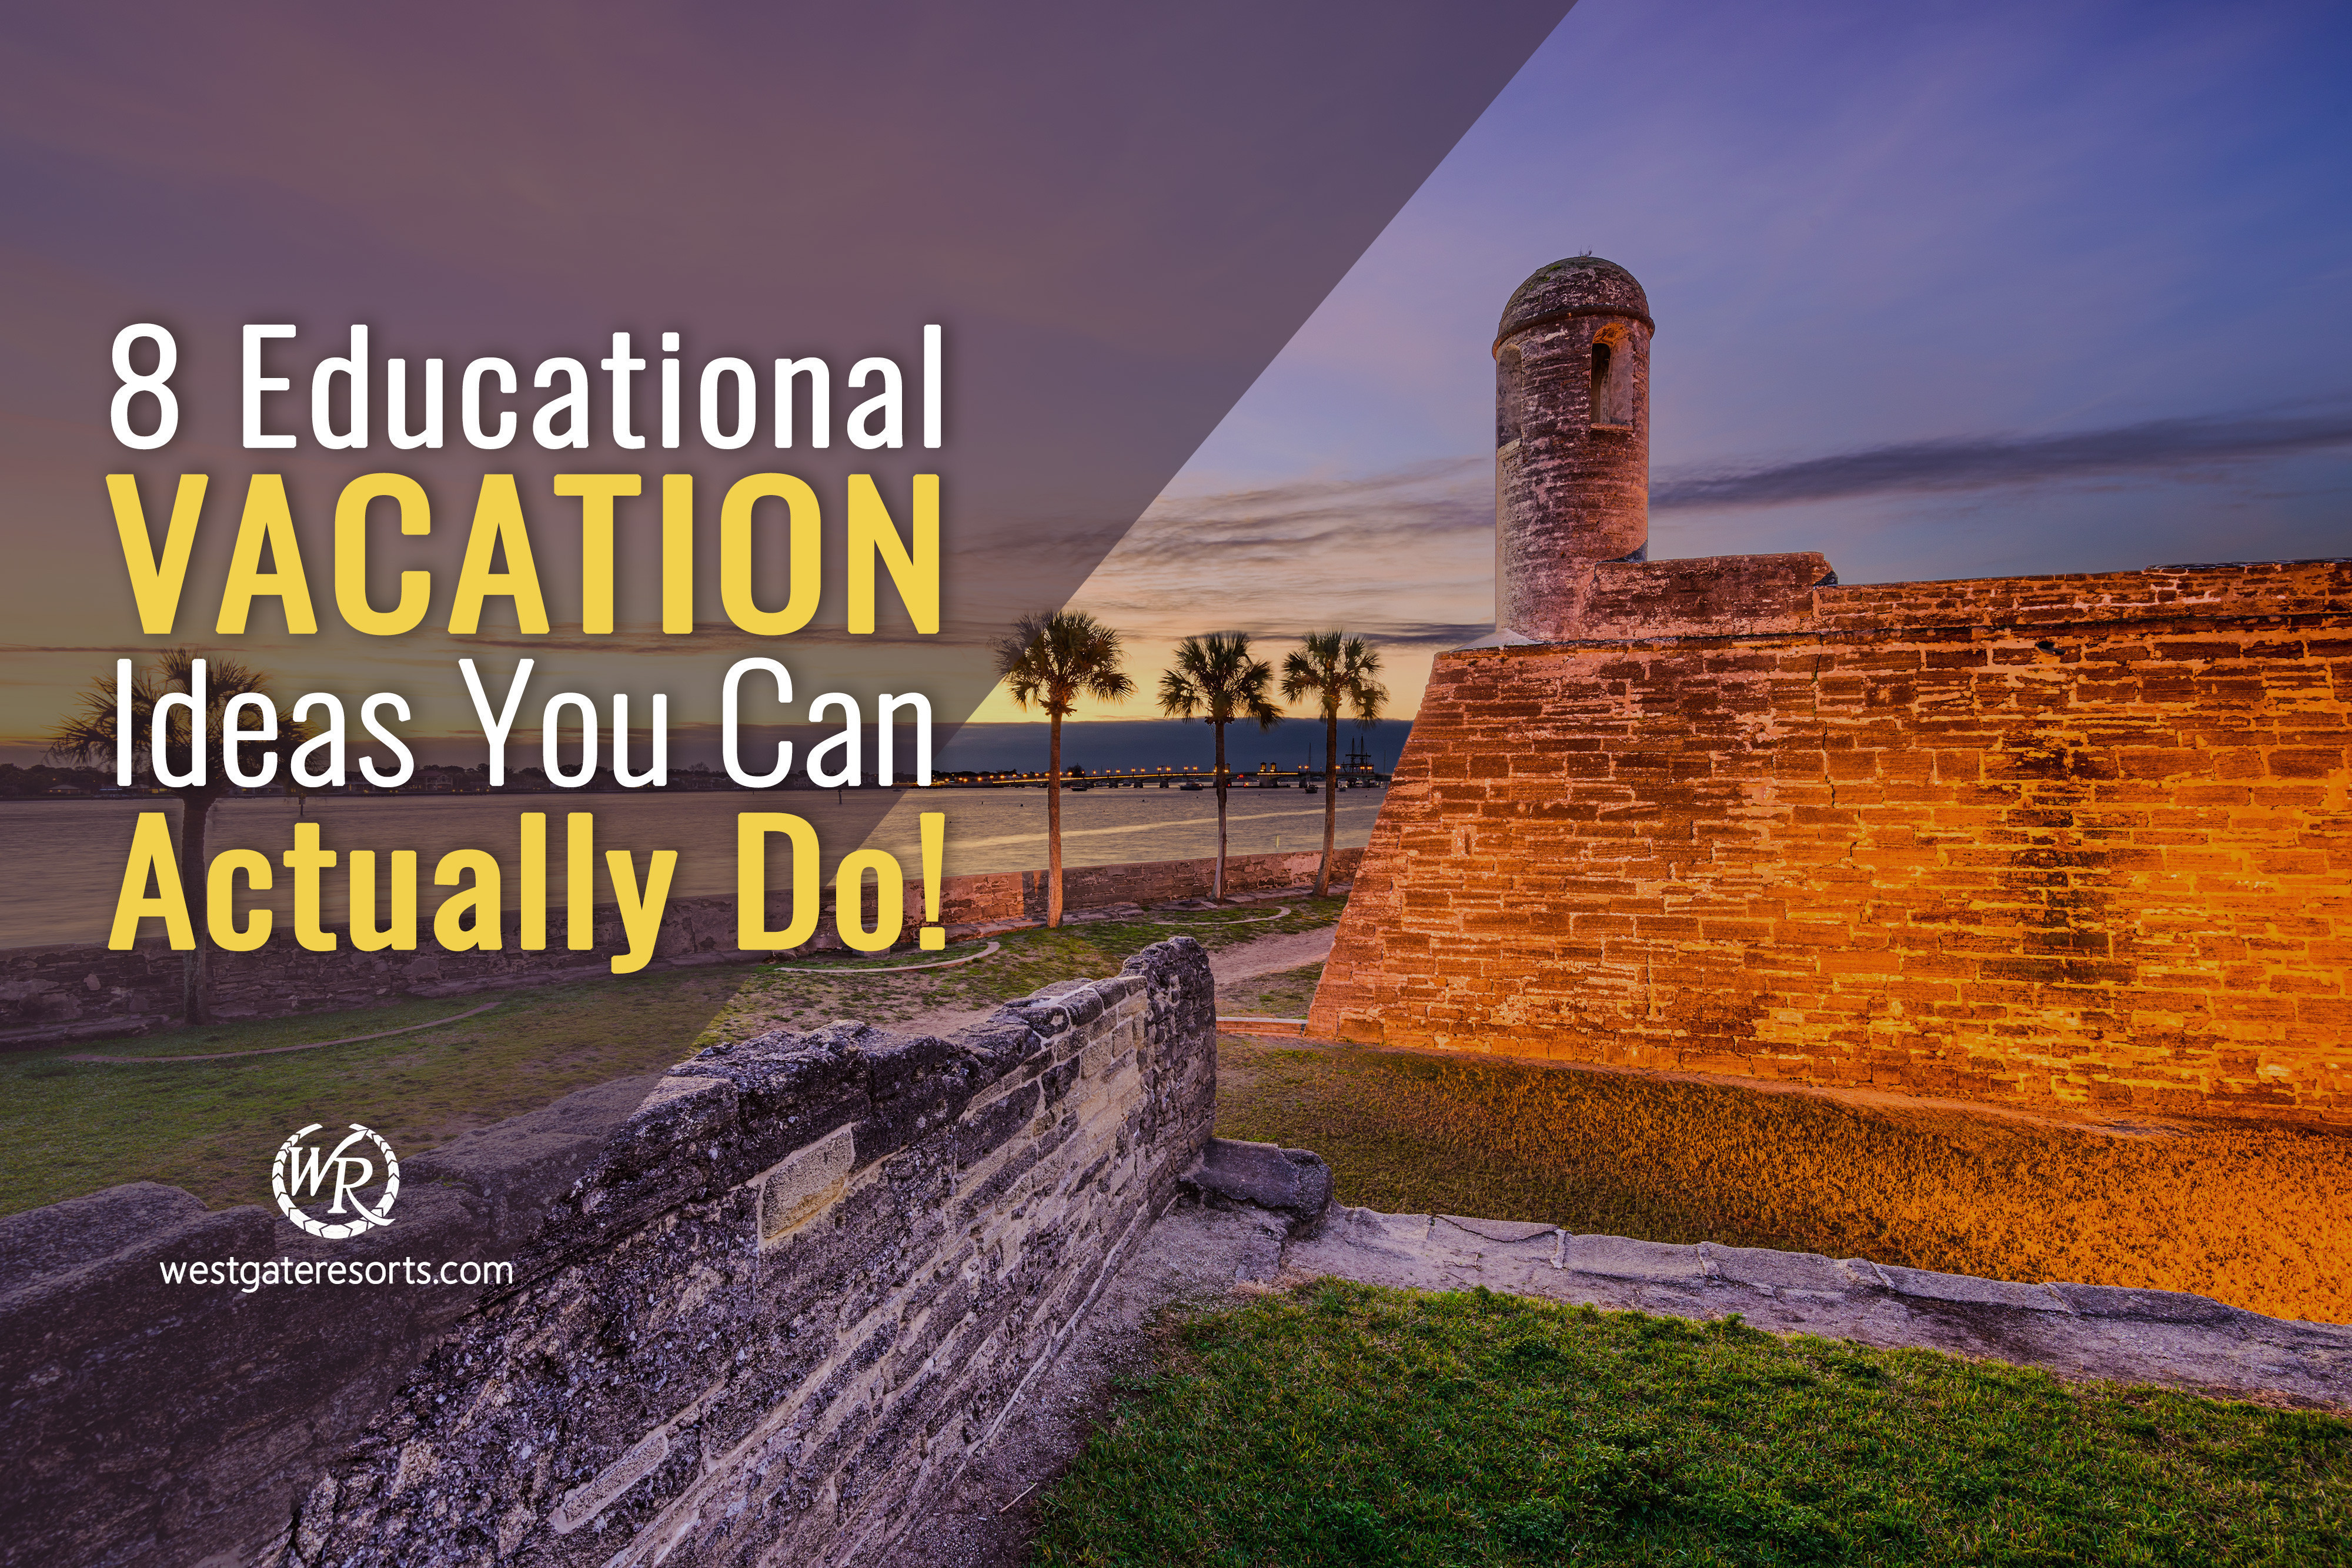 8 Educational Vacation Ideas You Can Actually Do!